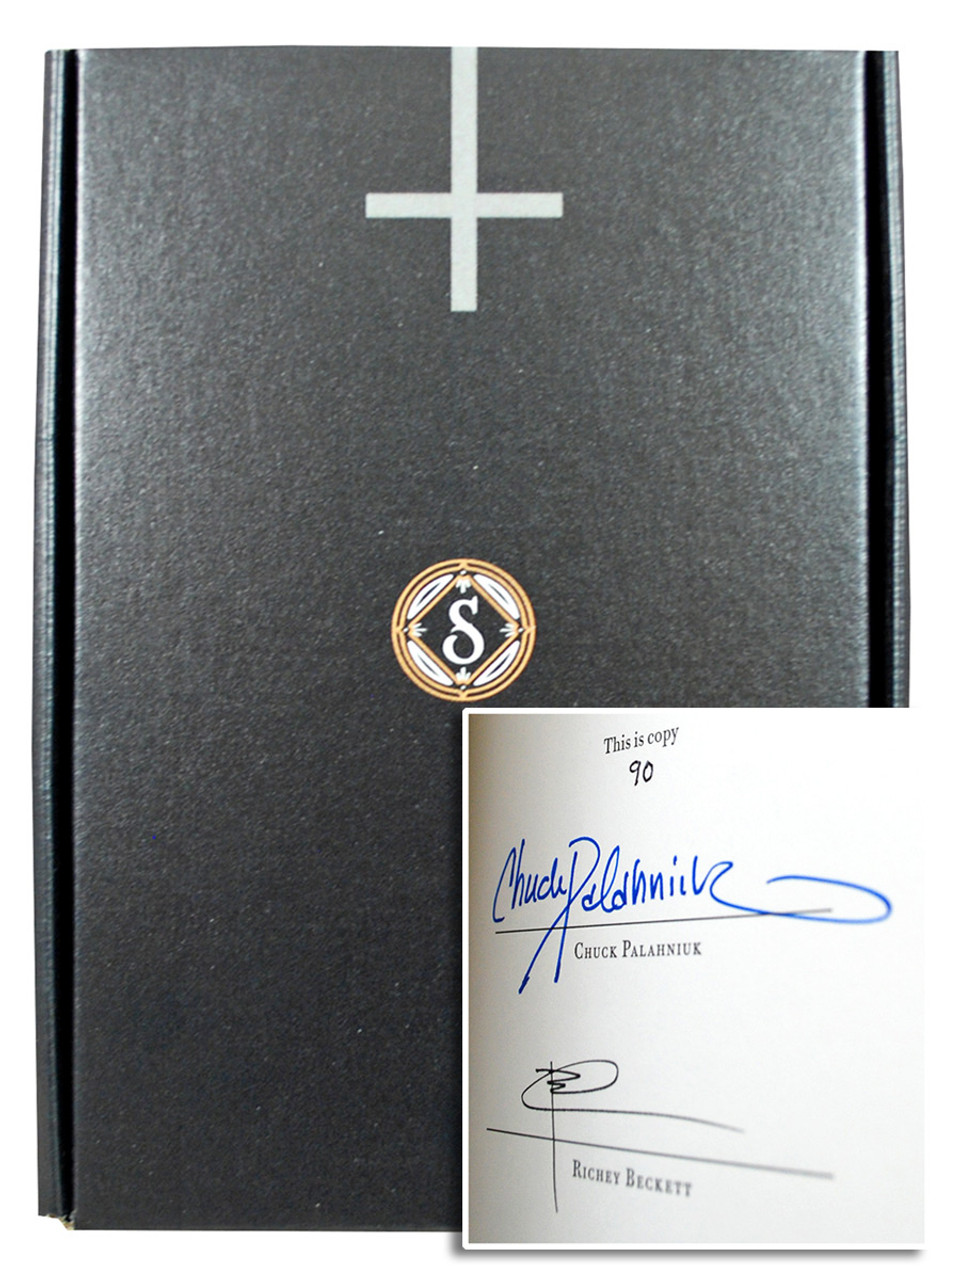 """Ira Levin """"Rosemary's Baby"""" Signed Limited Edition no 90 of 250, Slipcased Leather Bound Collector's Edition + Limited Edition Premiums [Very Fine]"""